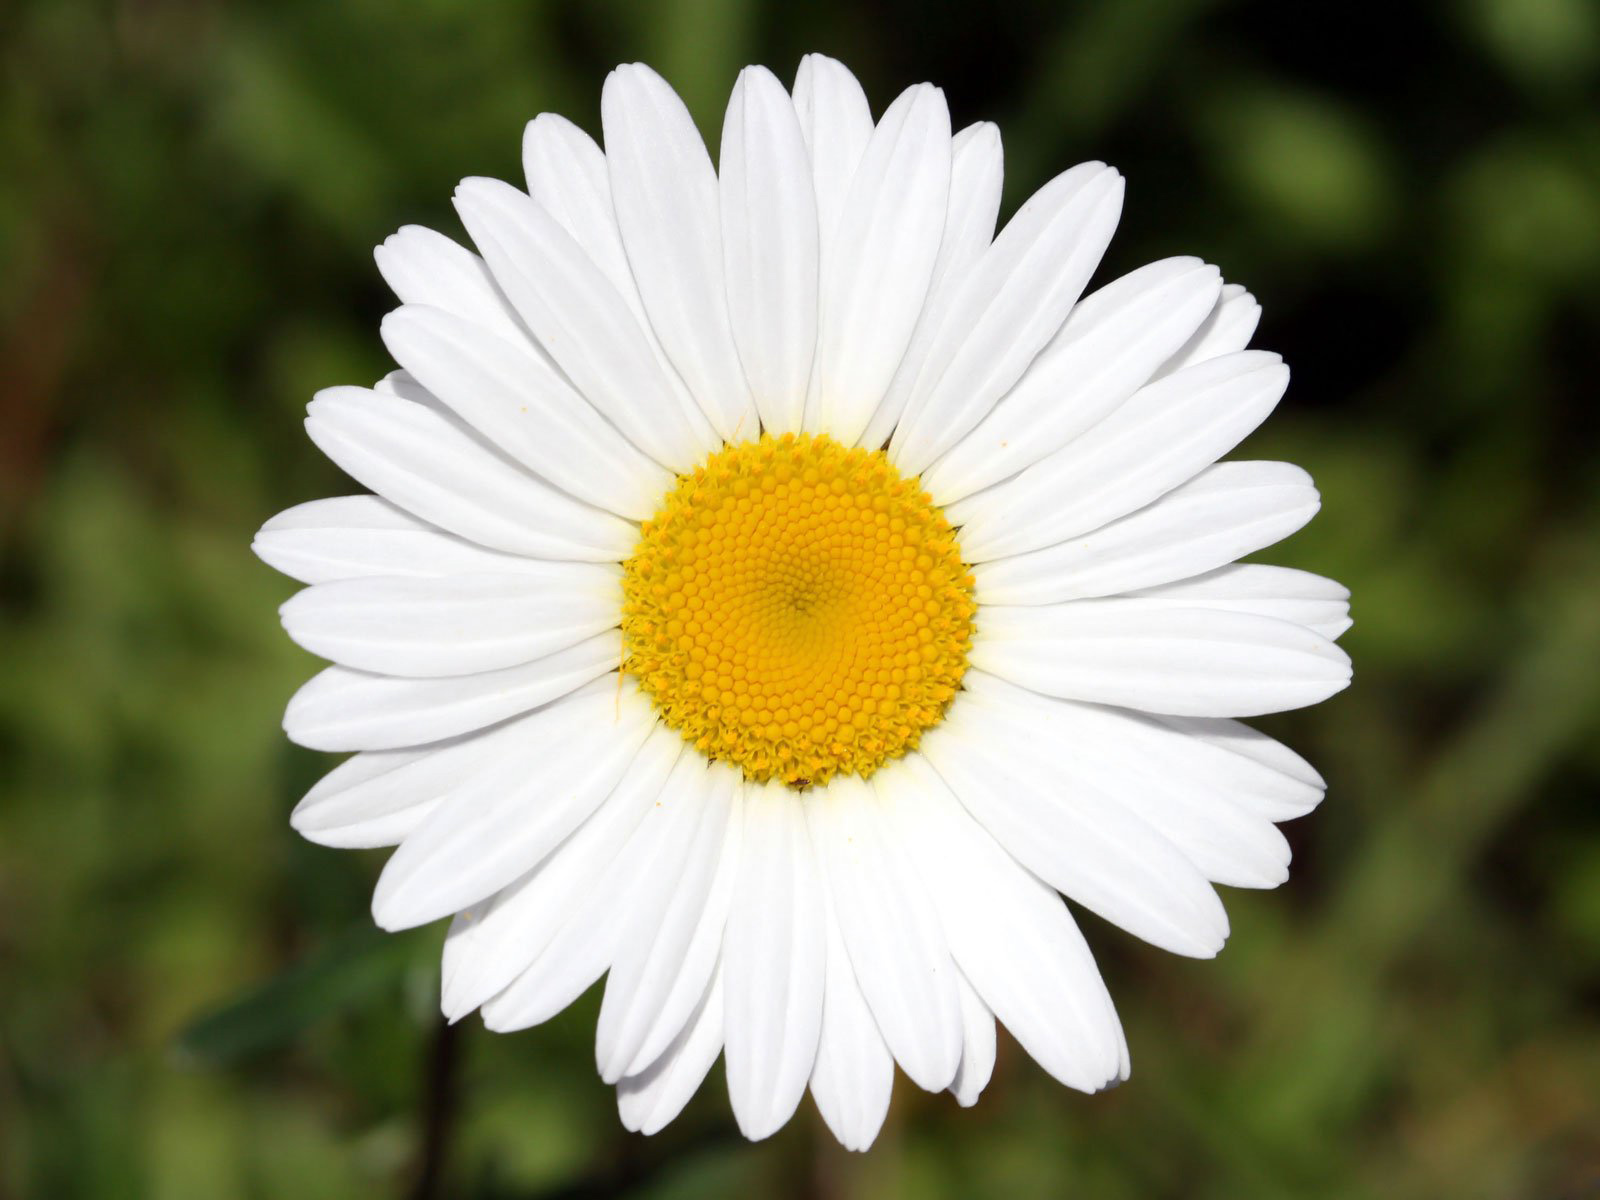 Cool white daisy